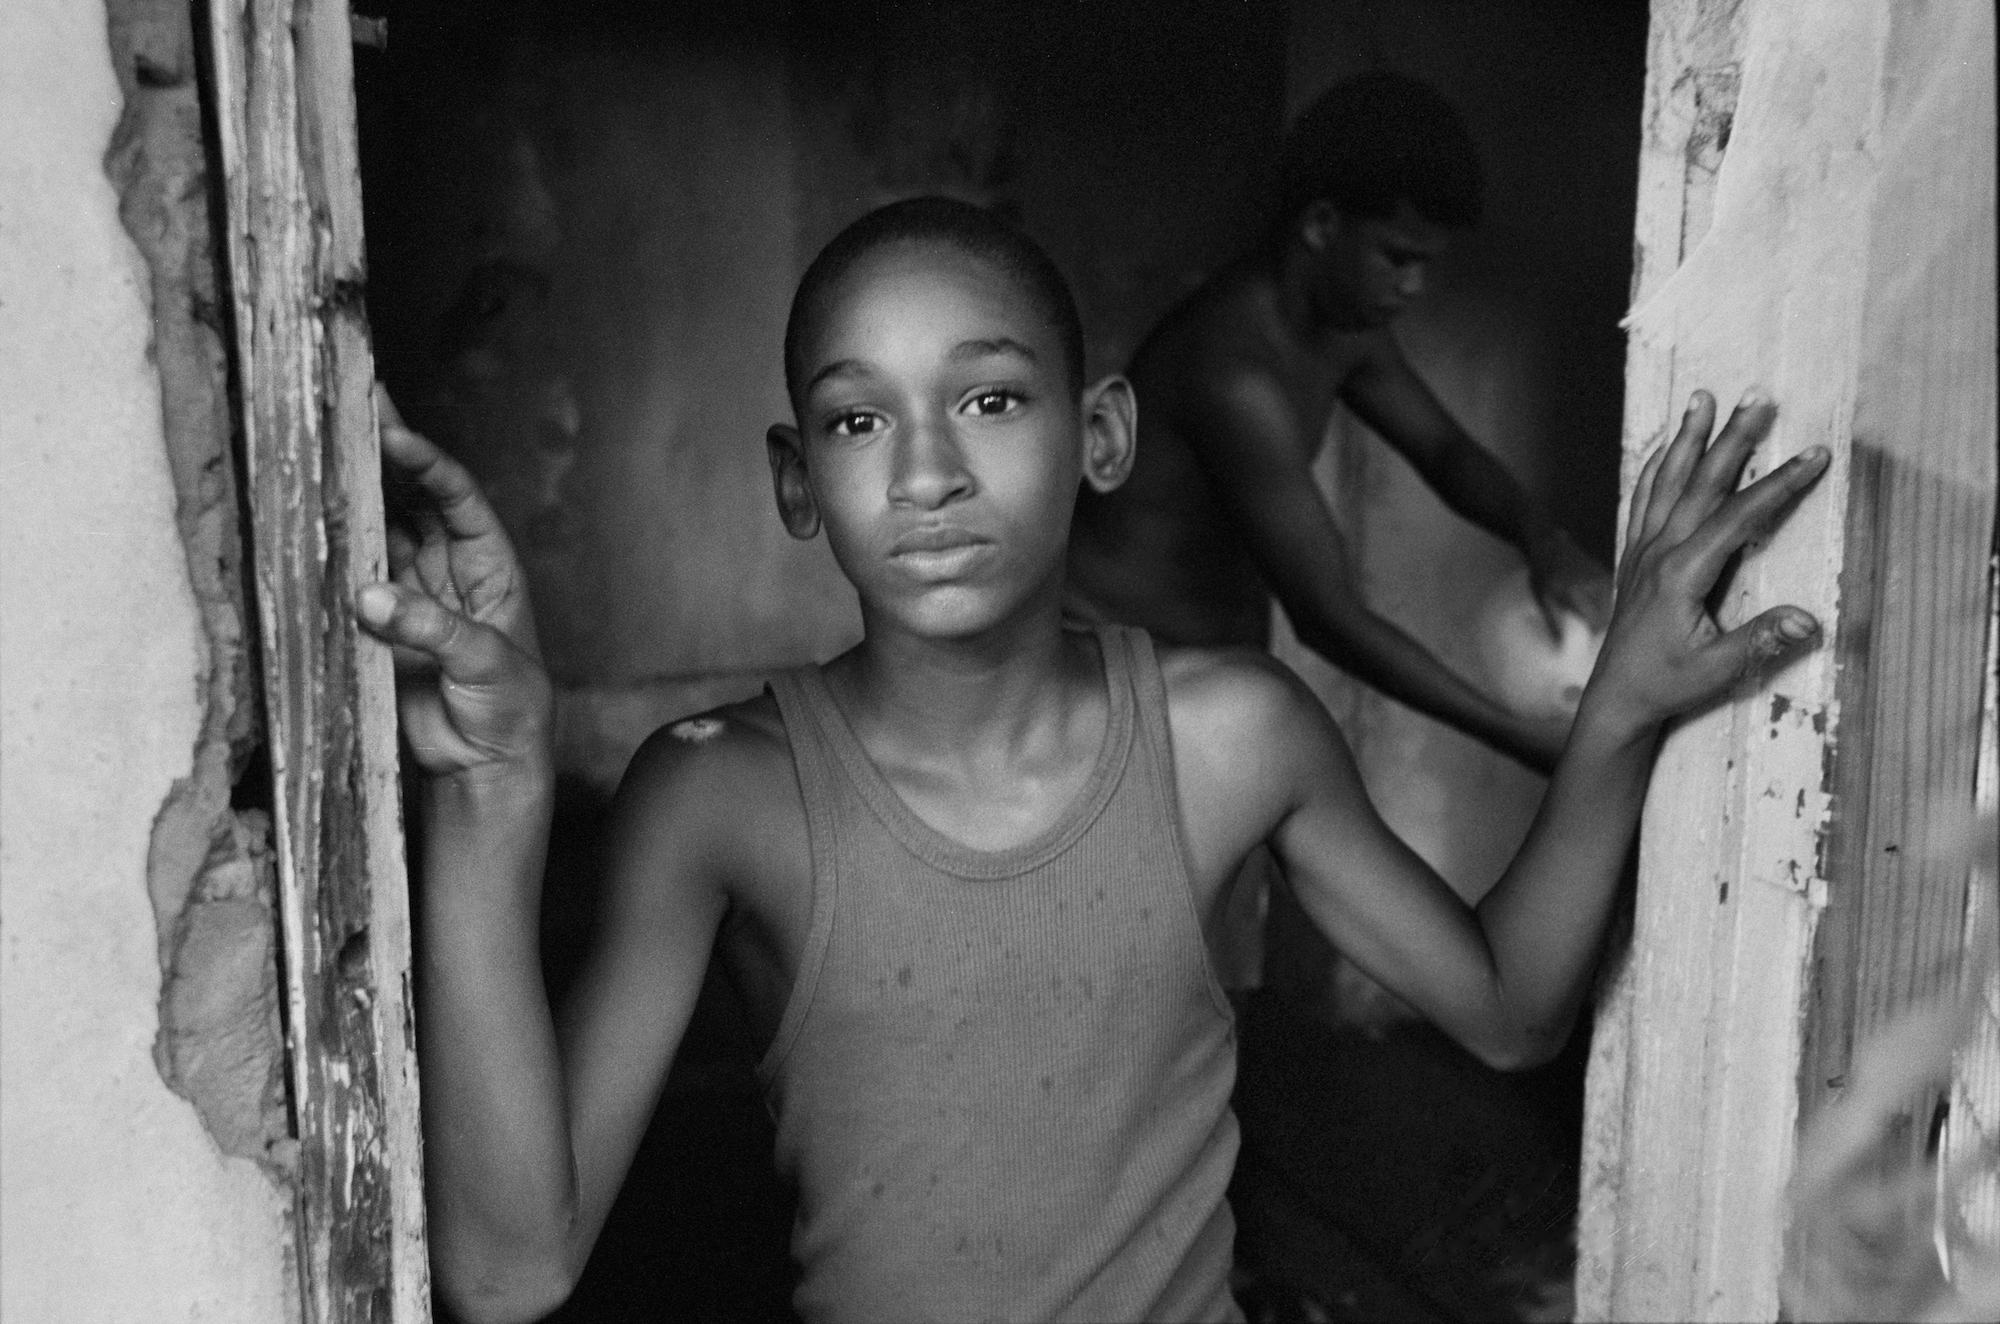 A boy playing in an abandoned house in Caño Martín Peña